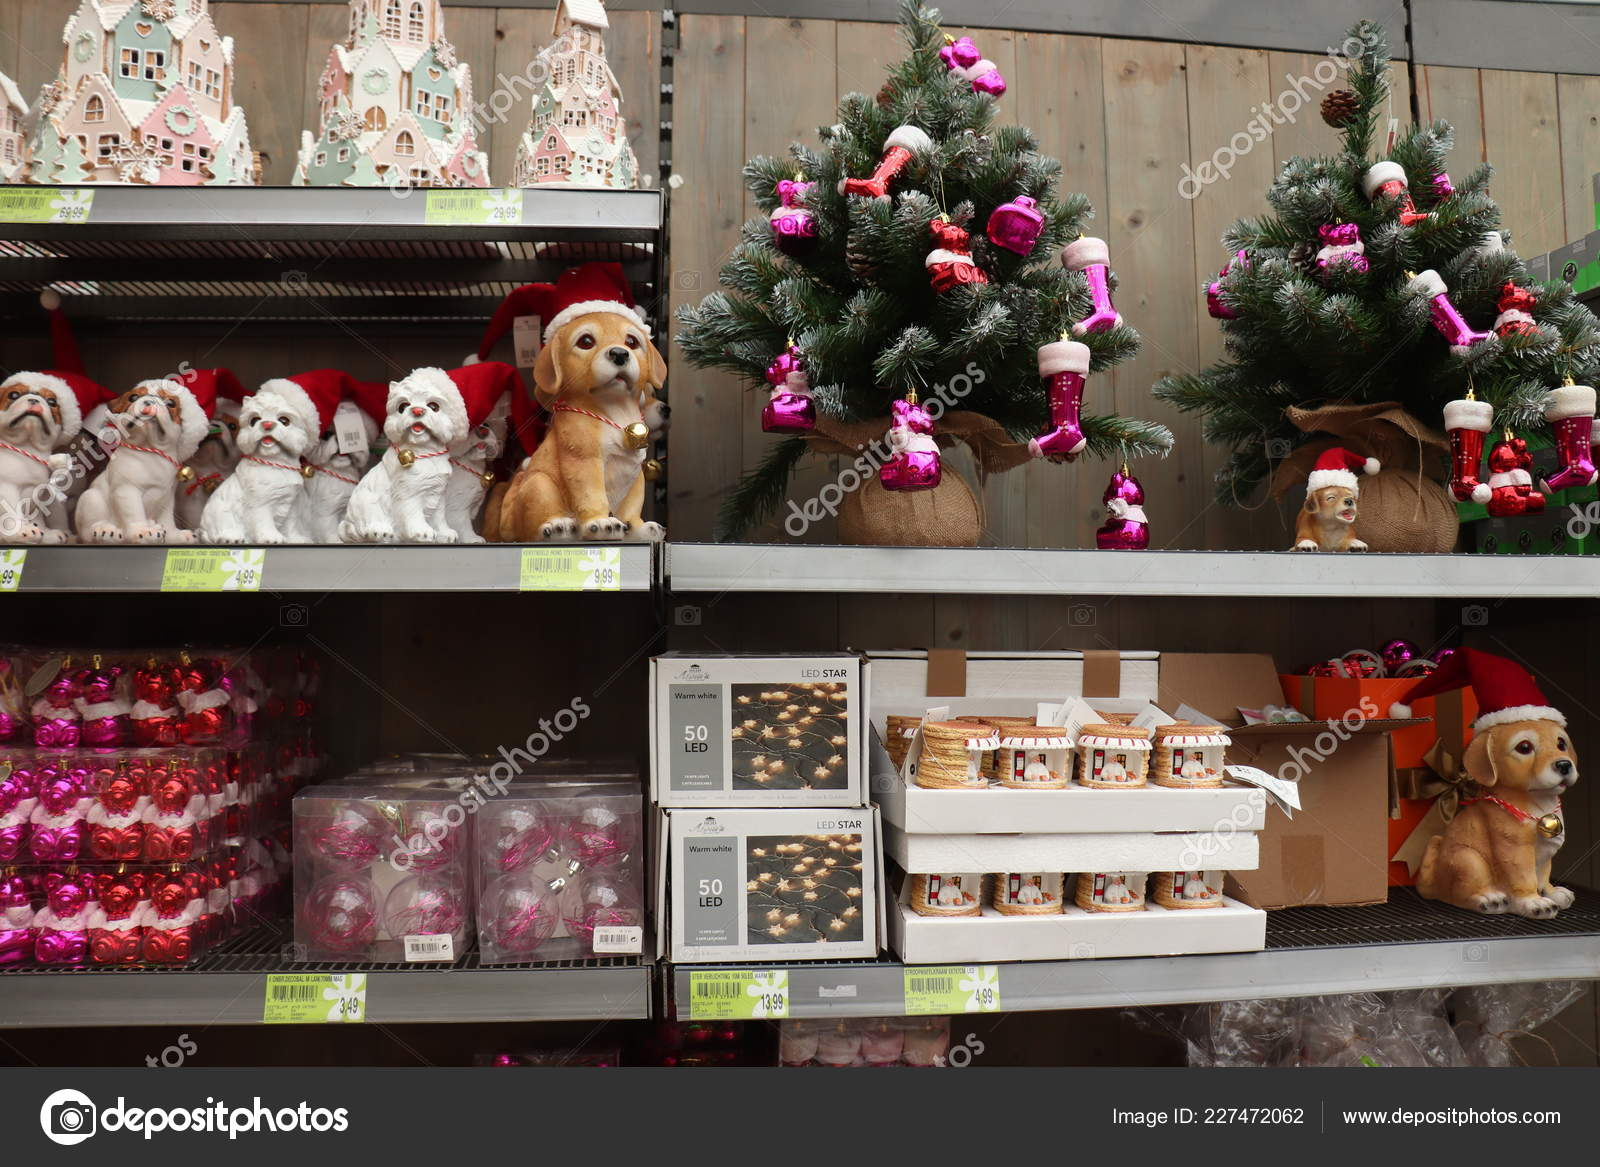 Cruquius Netherlands October 26th 2018 Christmas Decorations